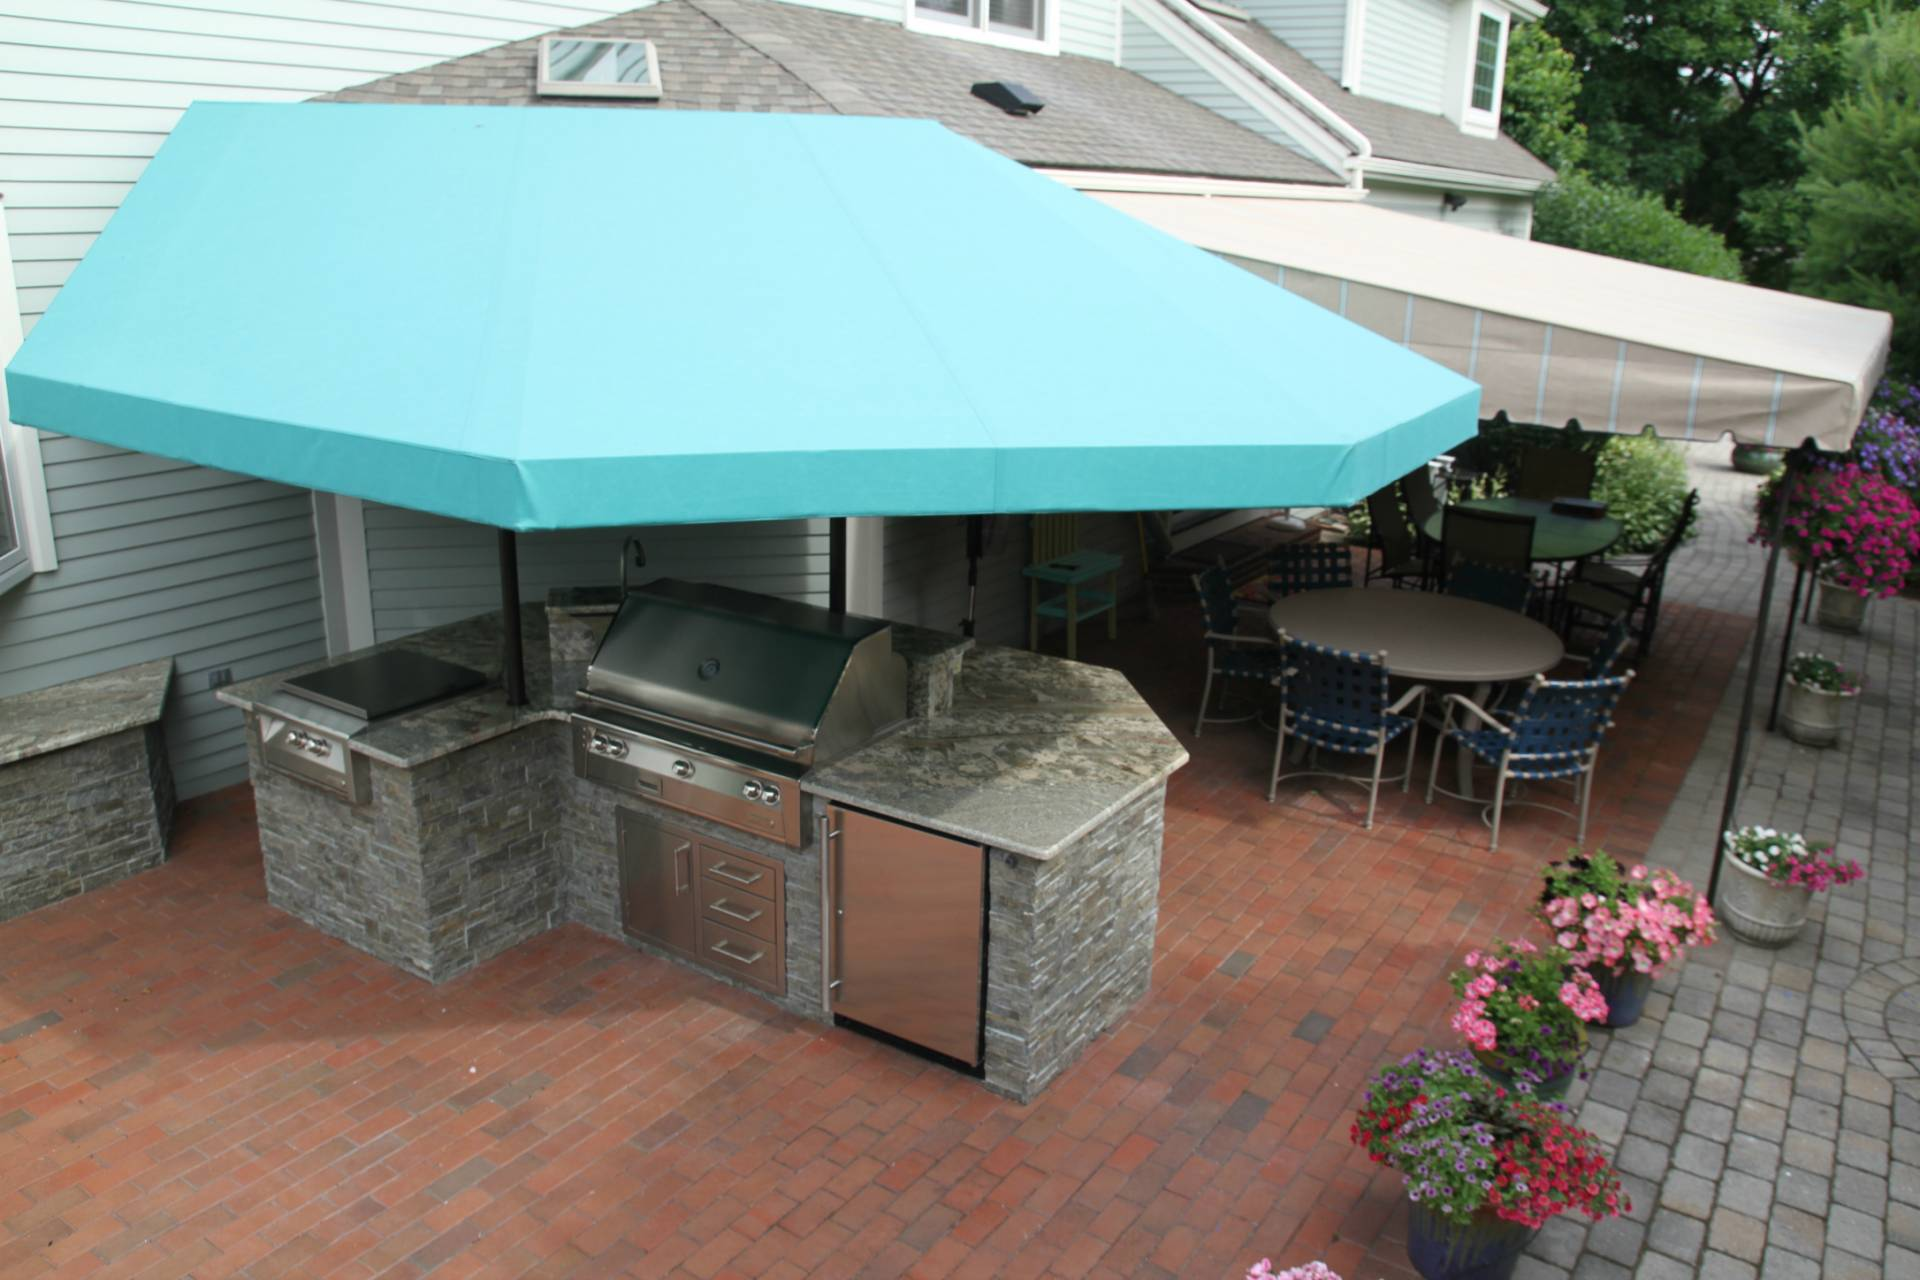 View · Outdoor ... & Outdoor Kitchen canopy cover | Kreideru0027s Canvas Service Inc.